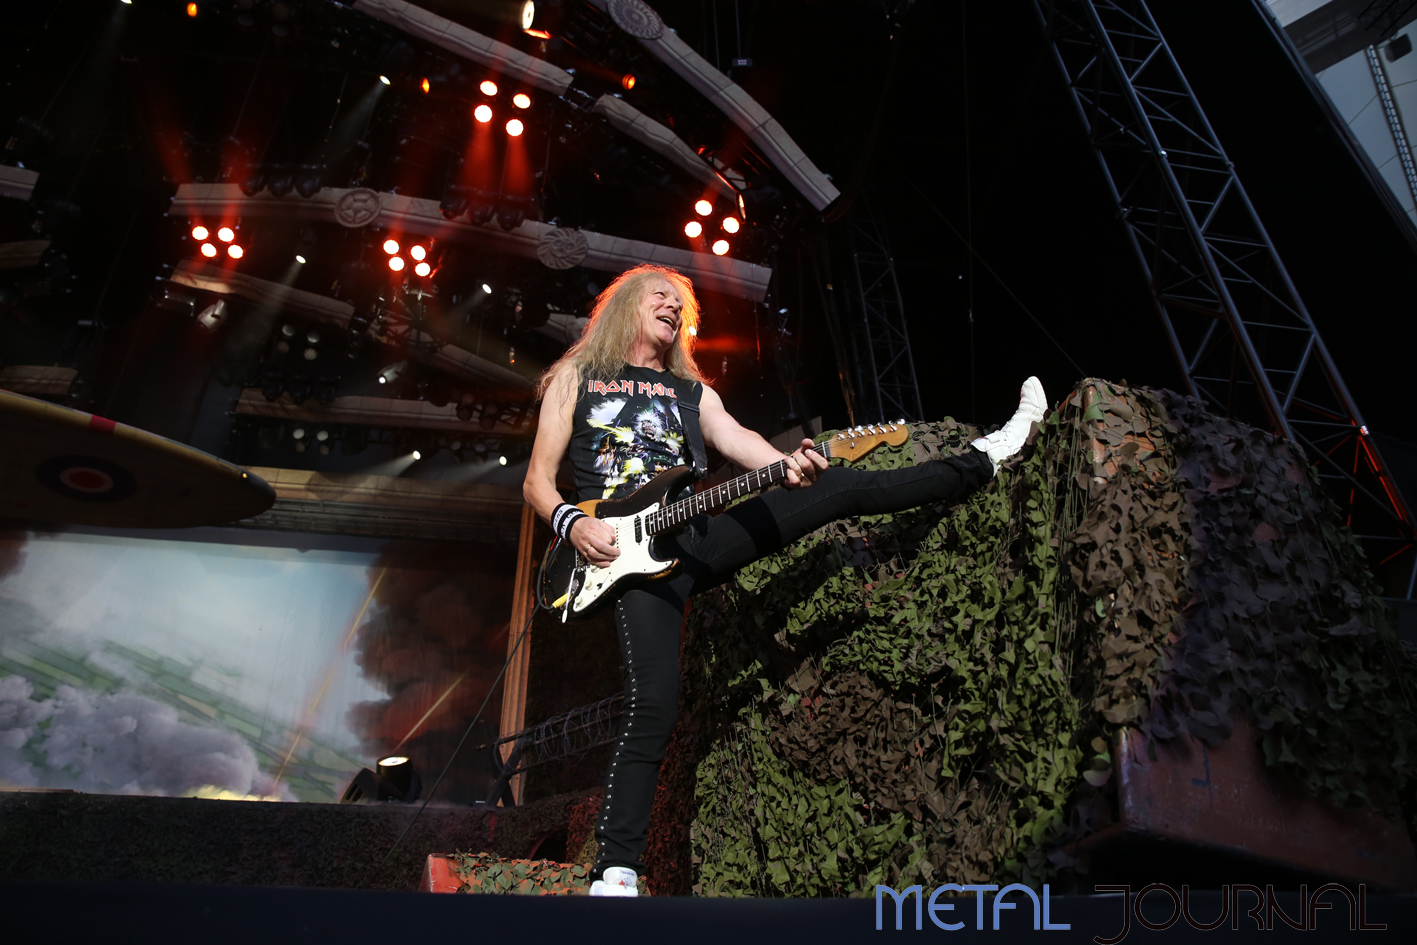 iron maiden - wanda metropolitano metal journal 2018 pic 9